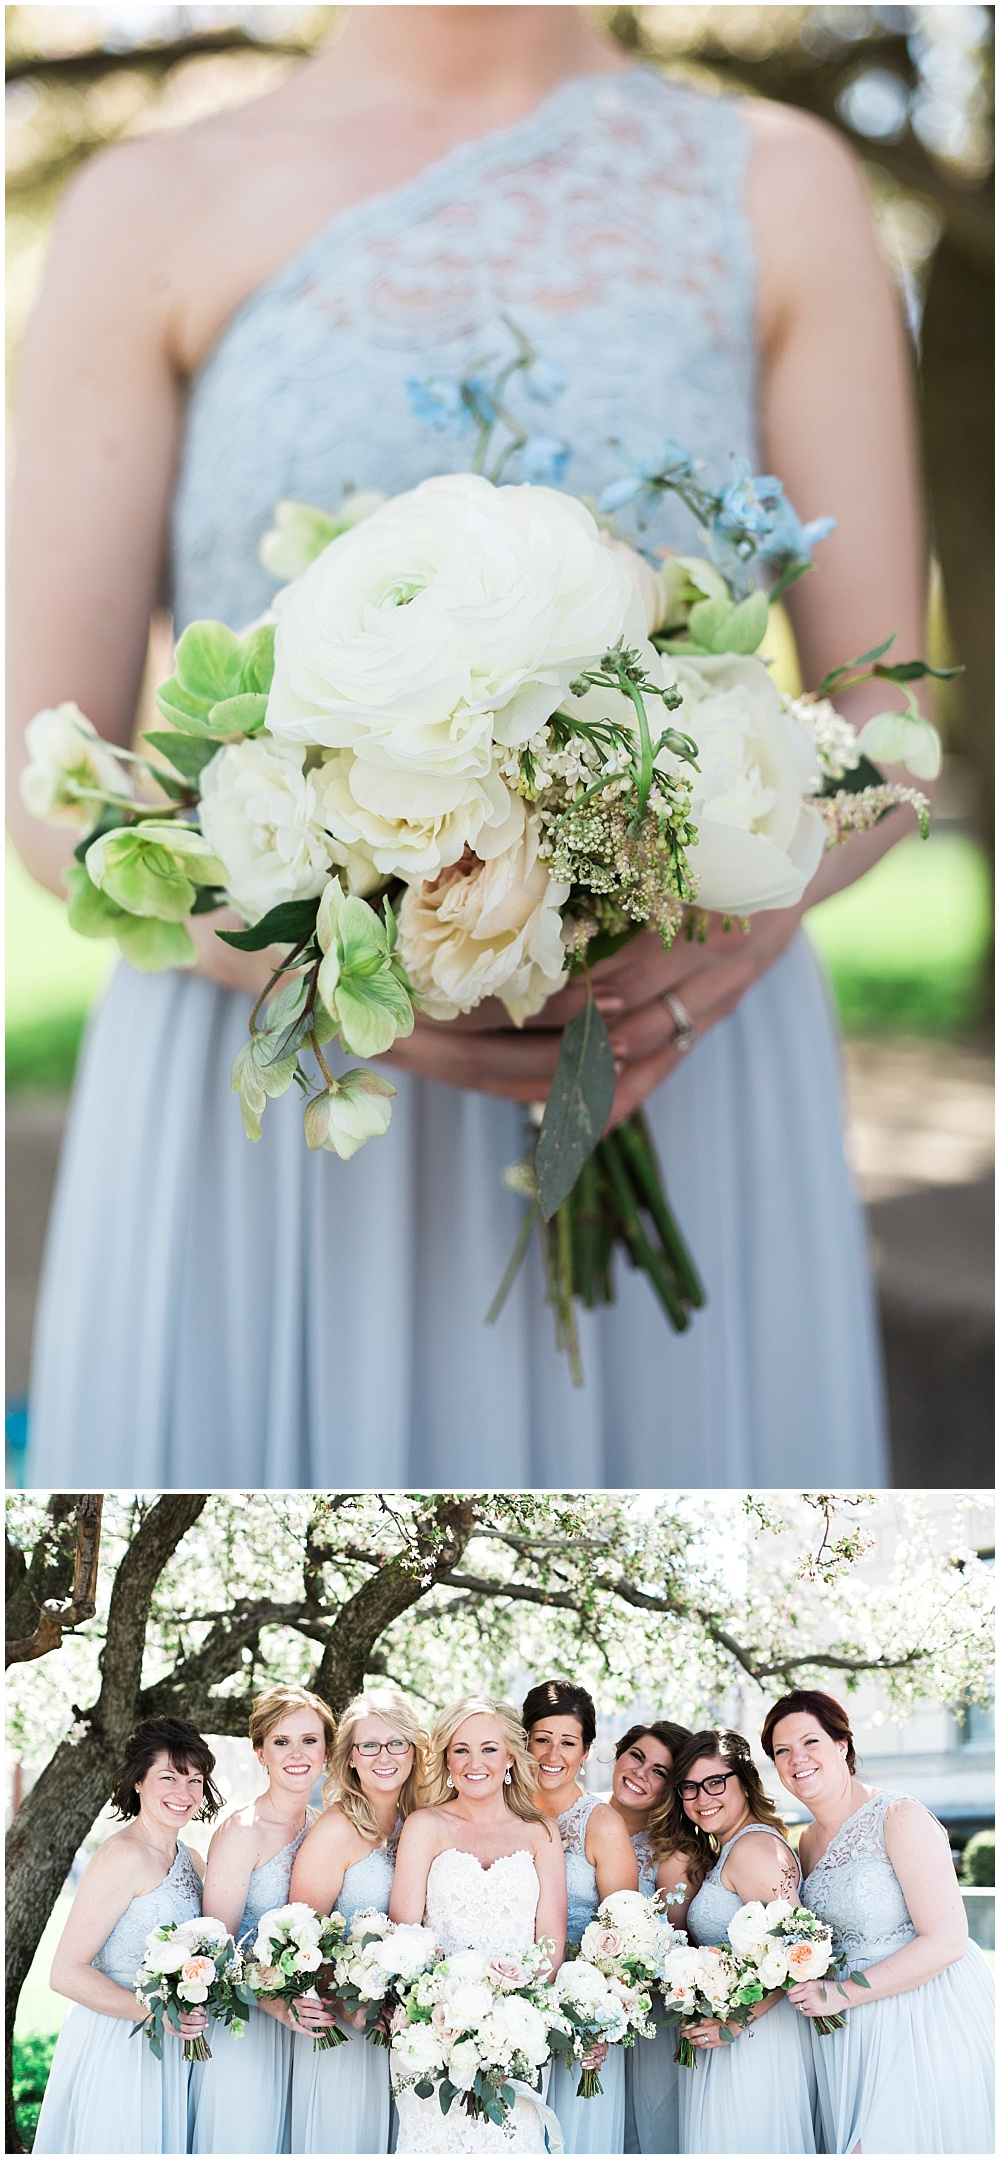 Light blue bridesmaid dresses with blush wedding bouquets | Downtown Indianapolis Wedding by Gabrielle Cheikh Photography & Jessica Dum Wedding Coordination